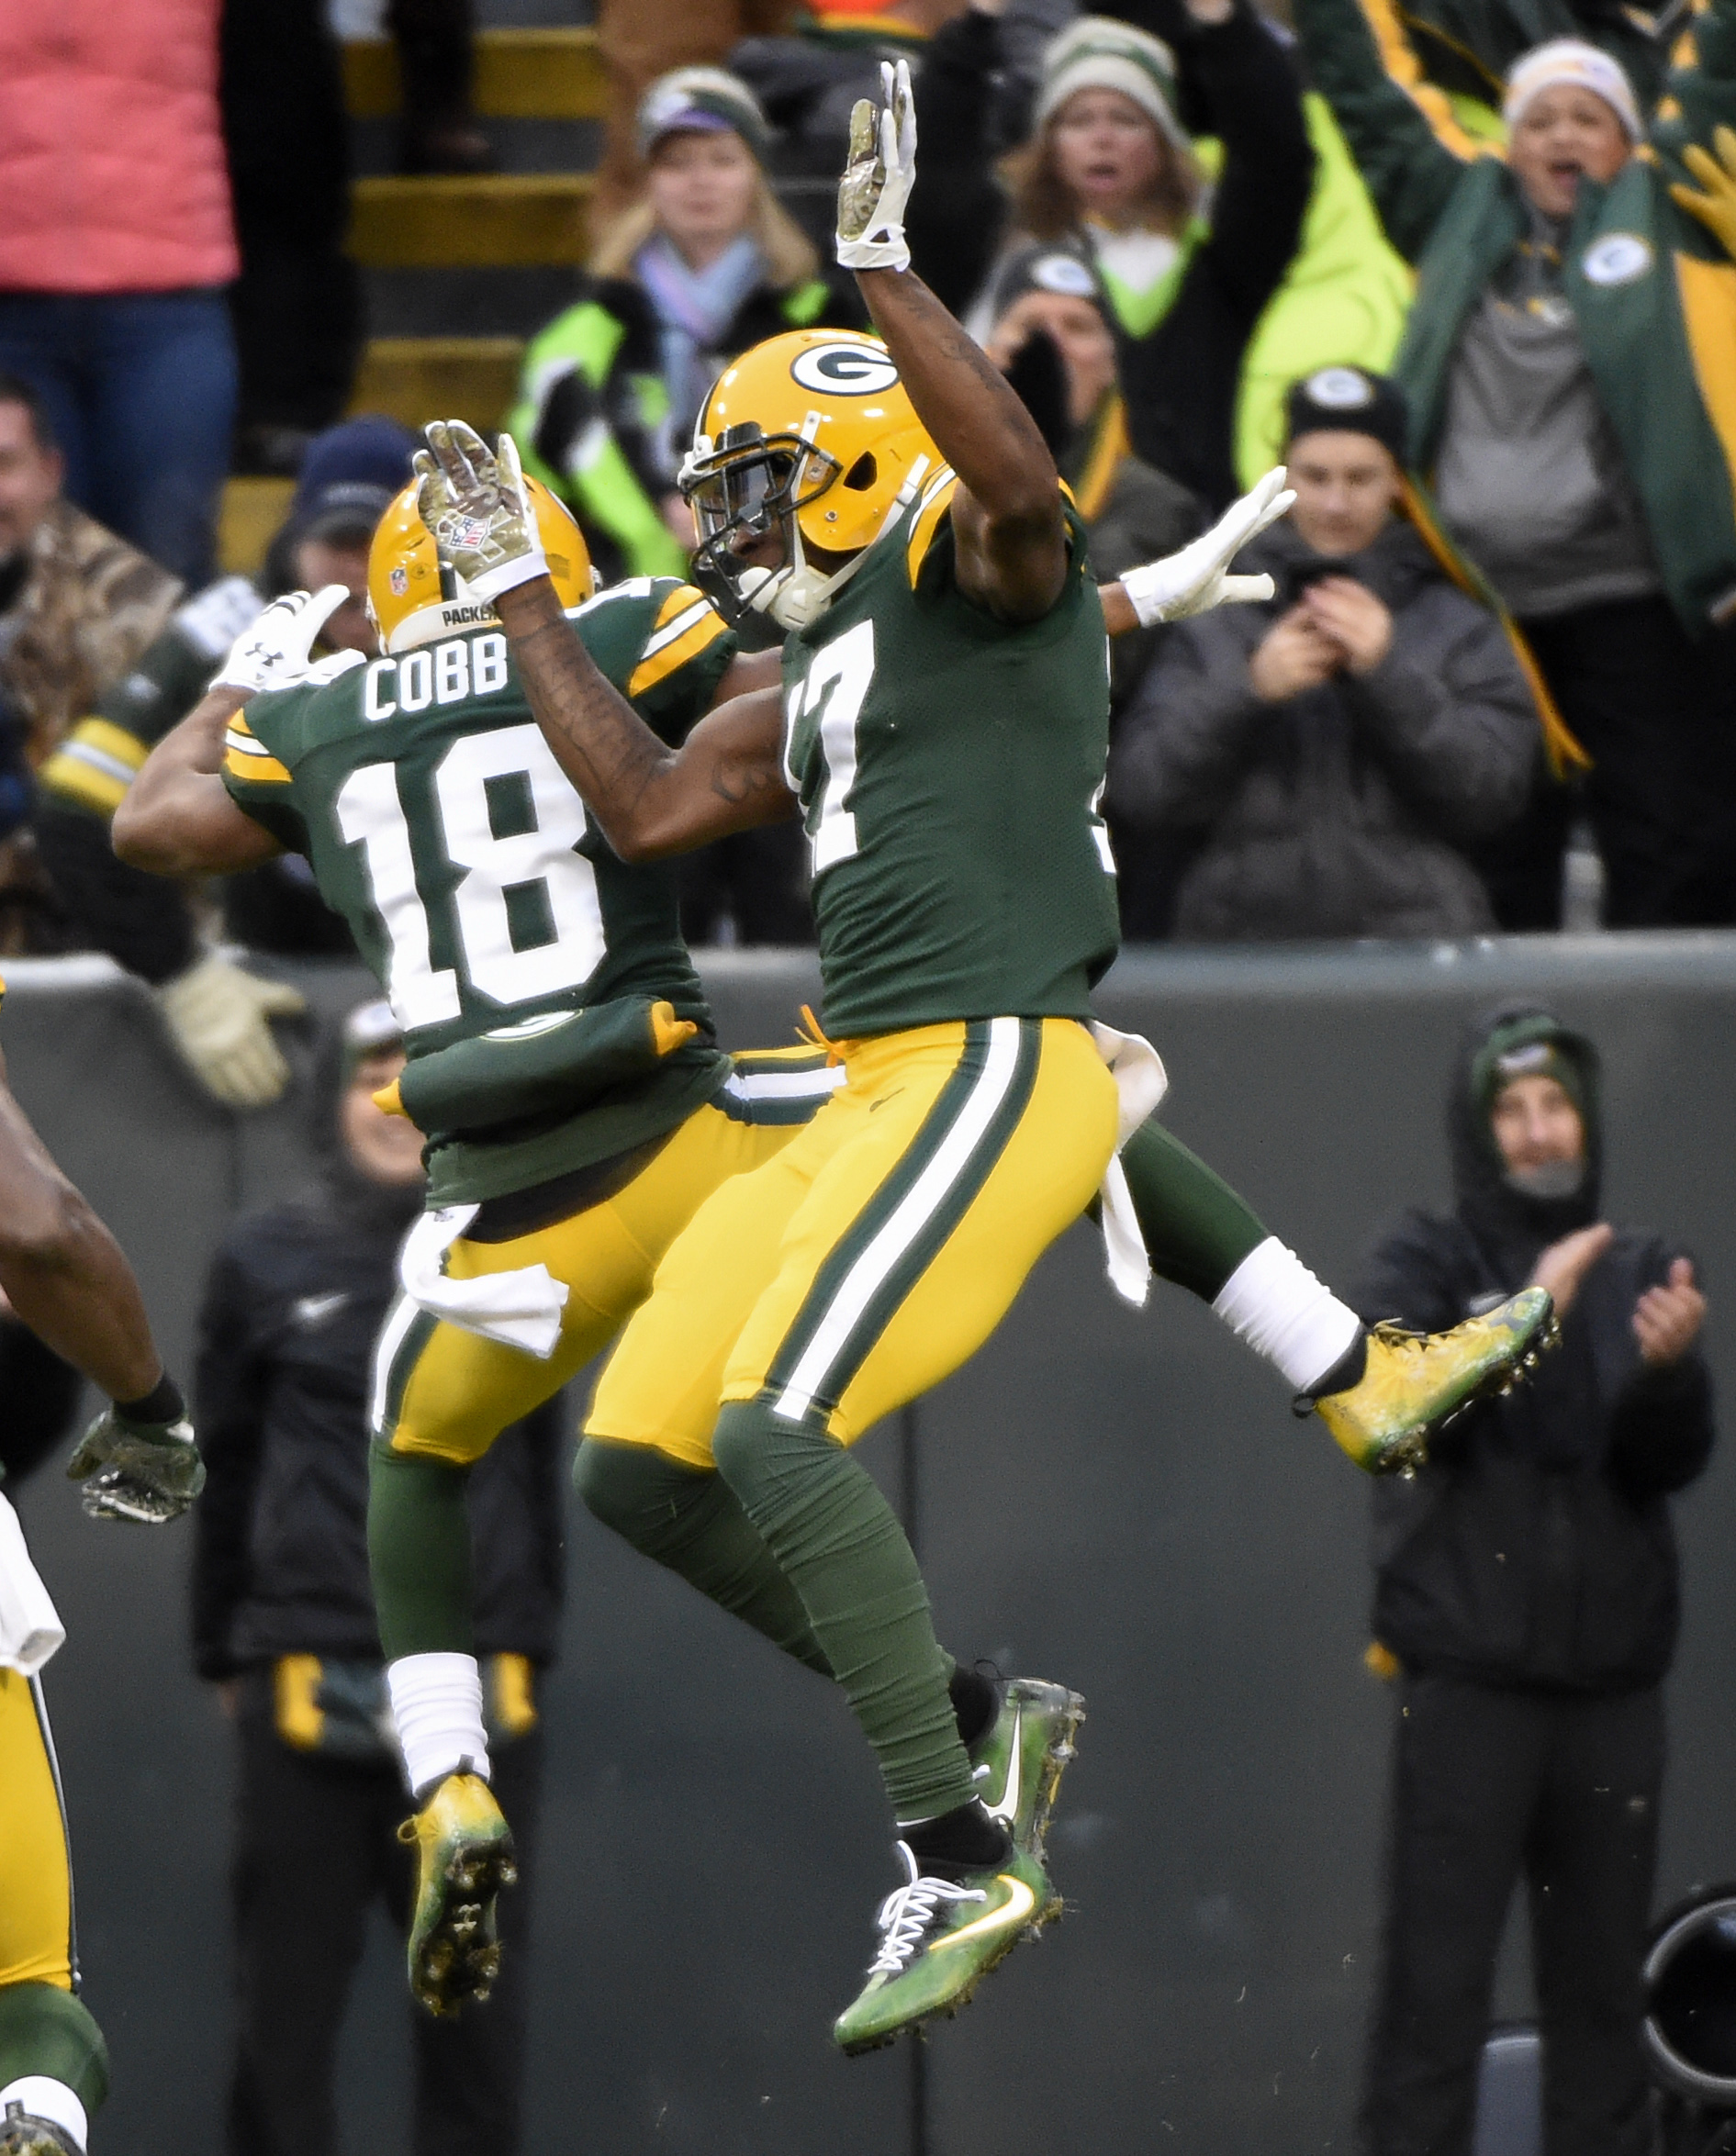 NFL: Seattle Seahawks at Green Bay Packers